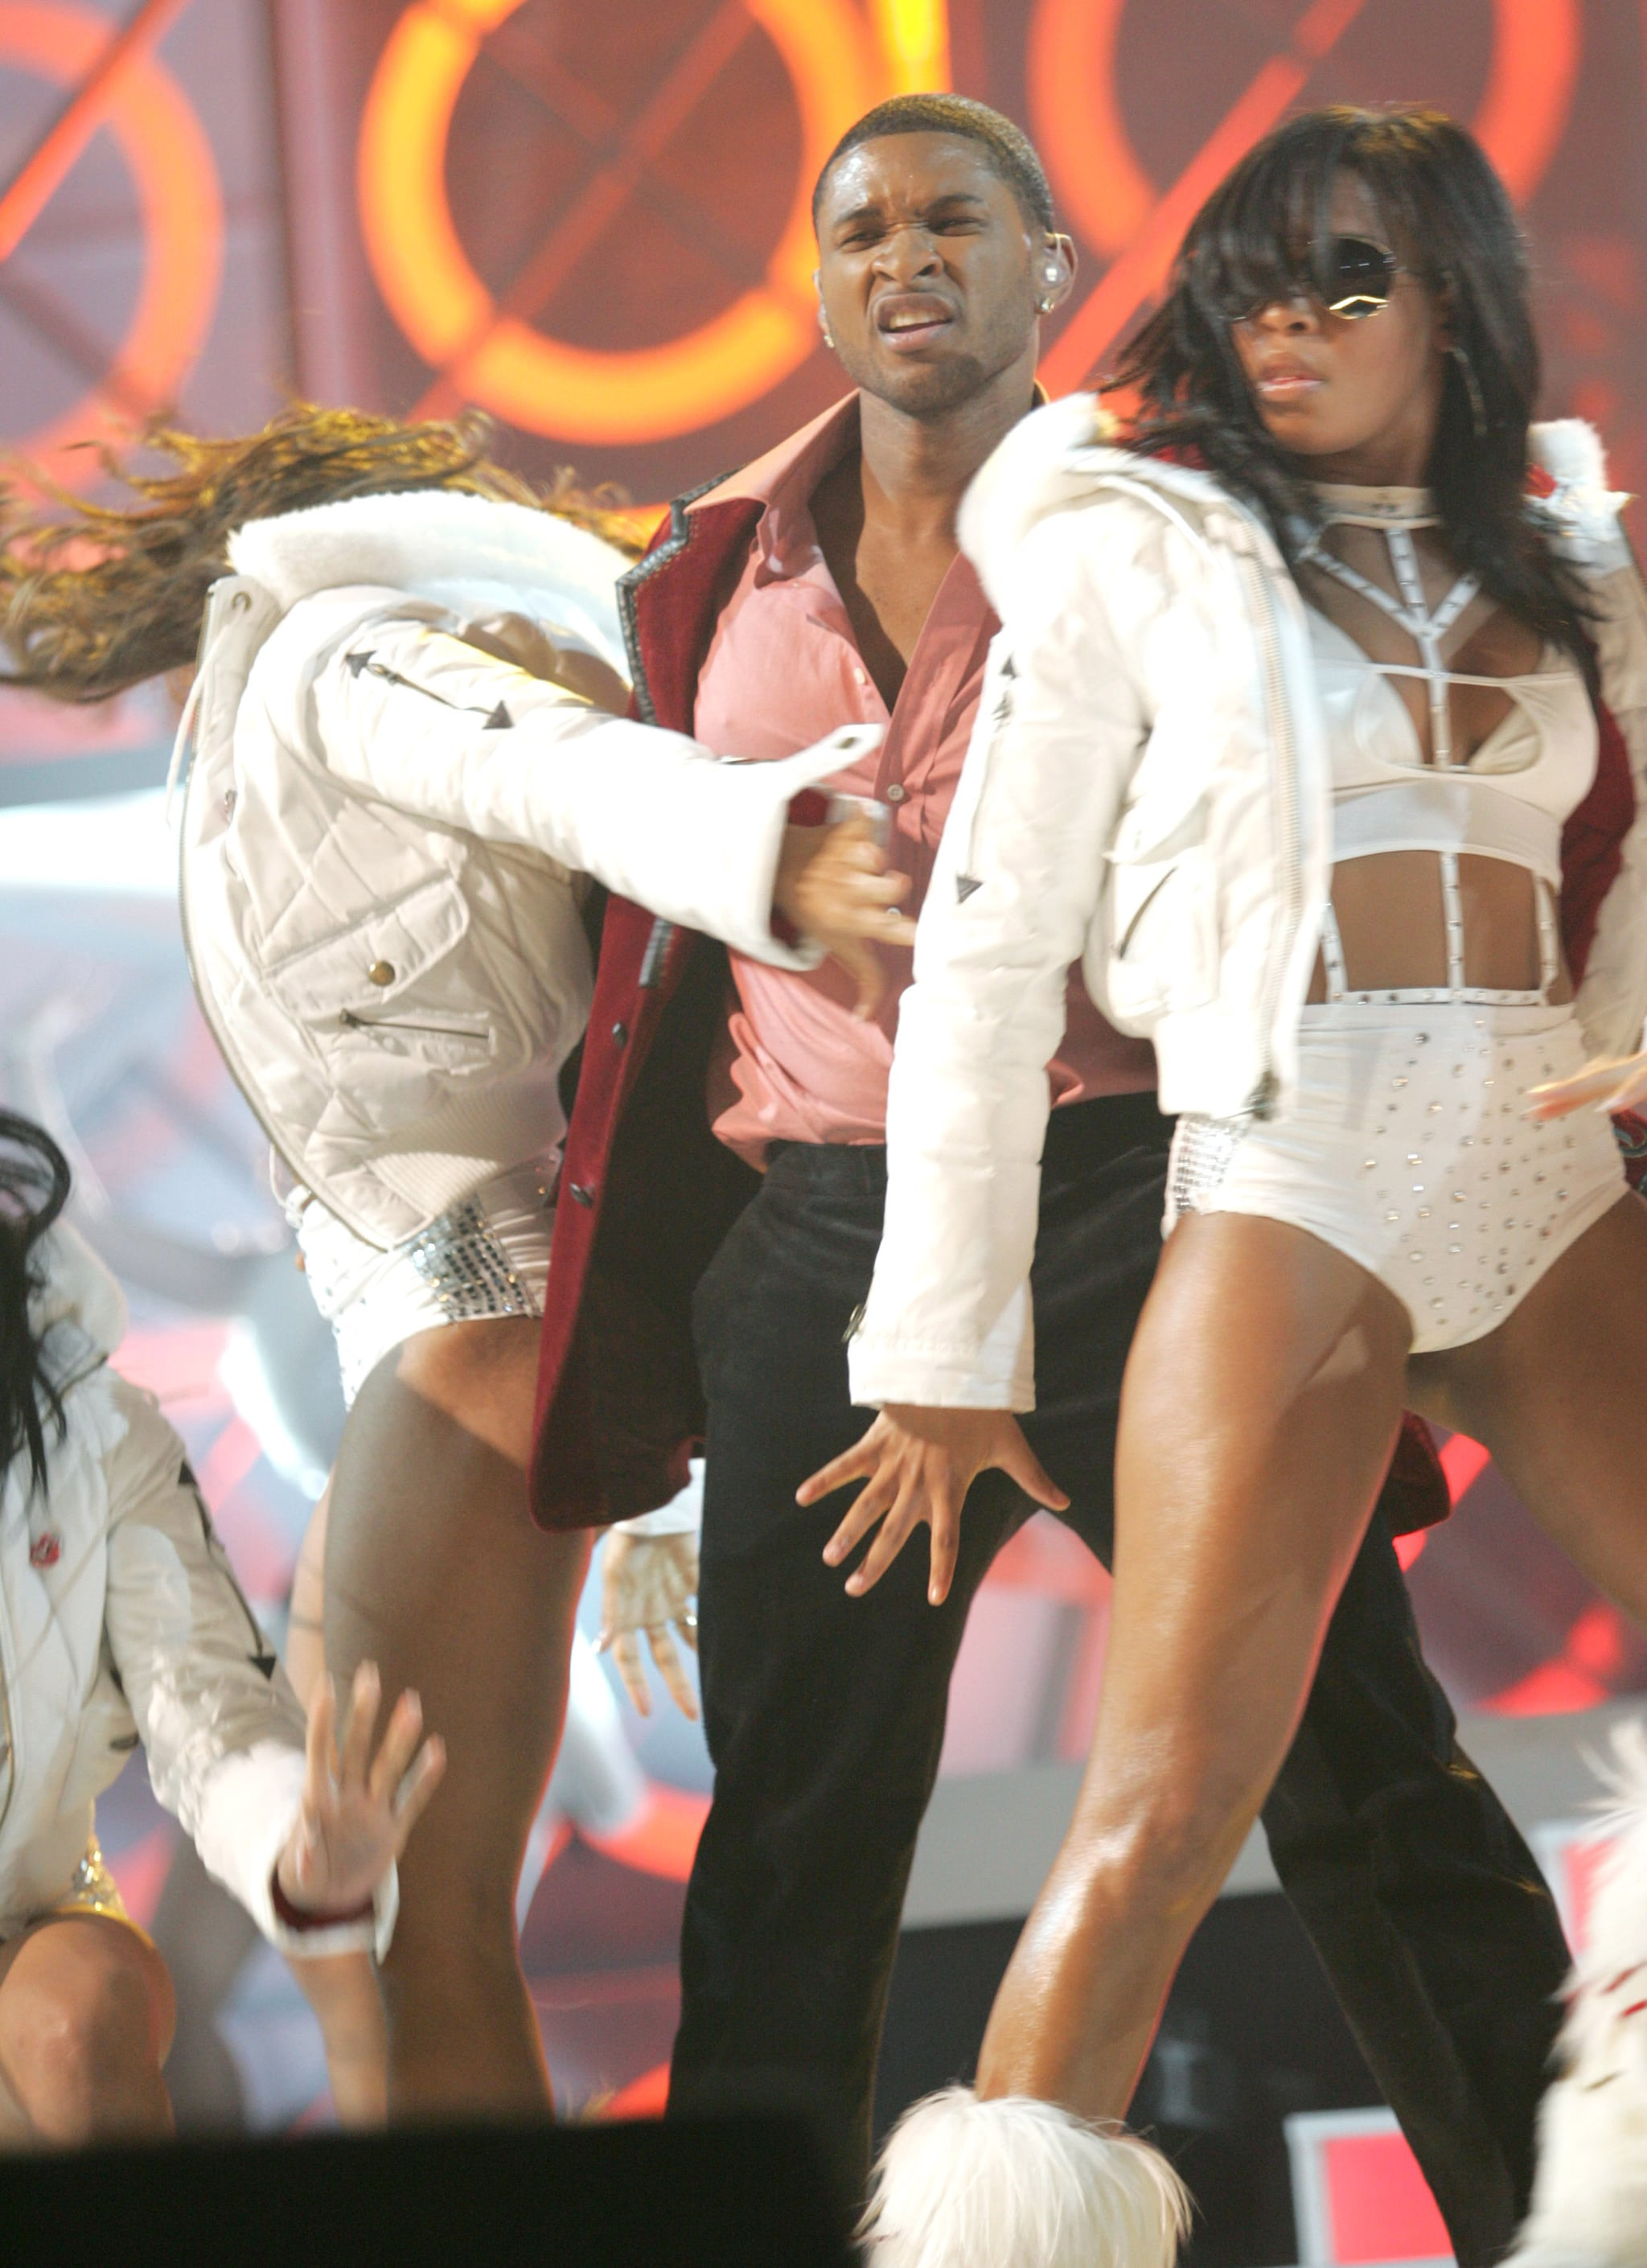 Usher got sexy on stage in December 2004 for the Billboard Music Awards.